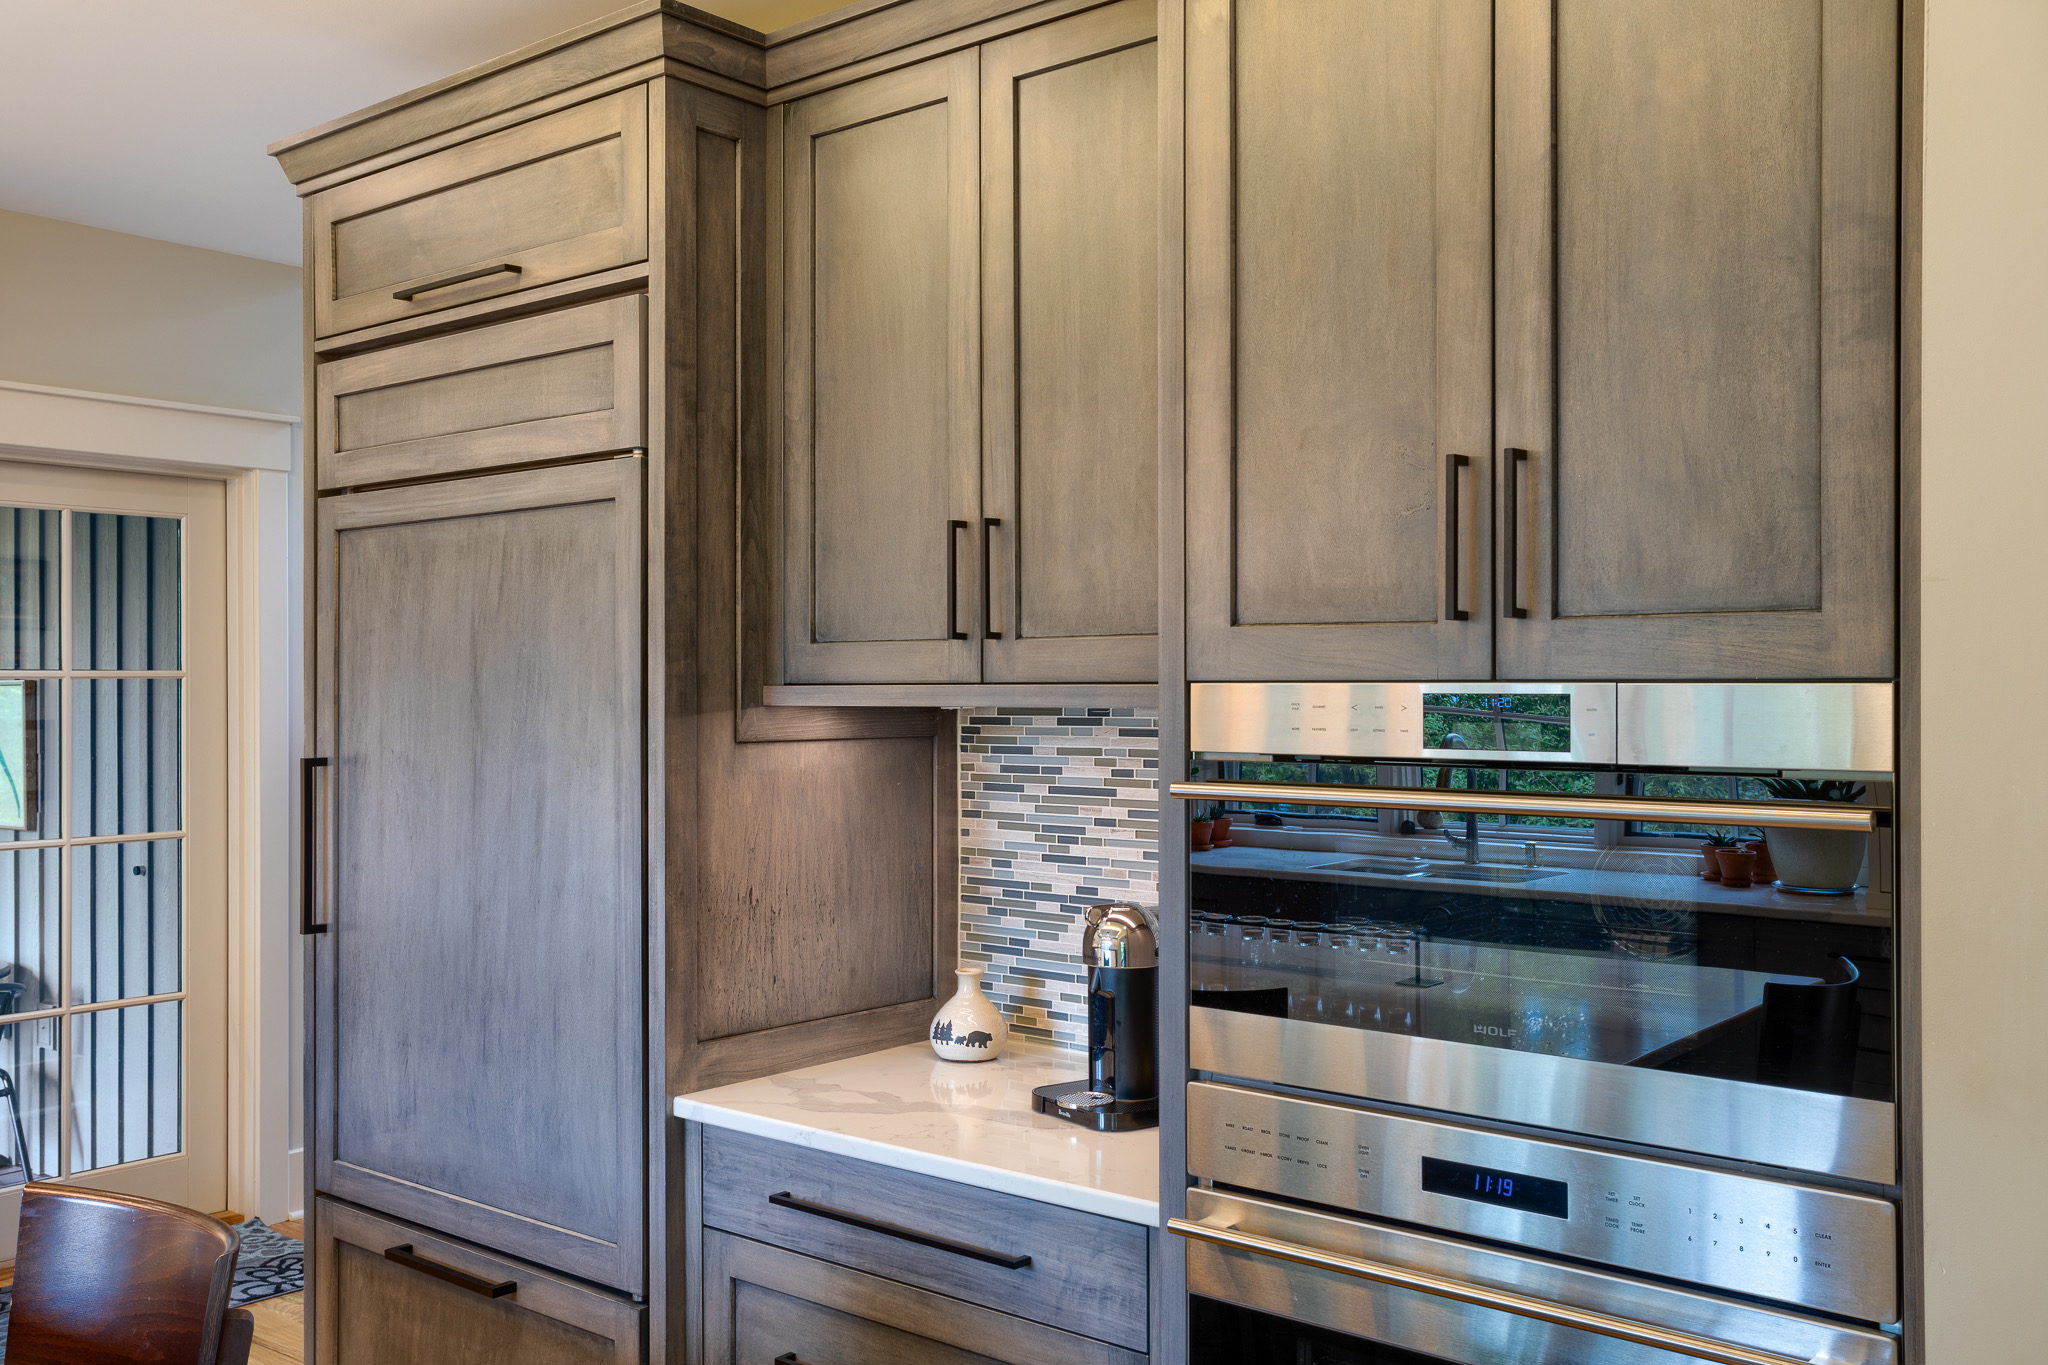 Appliance wall in new modern, rustic kitch with gray cabinets